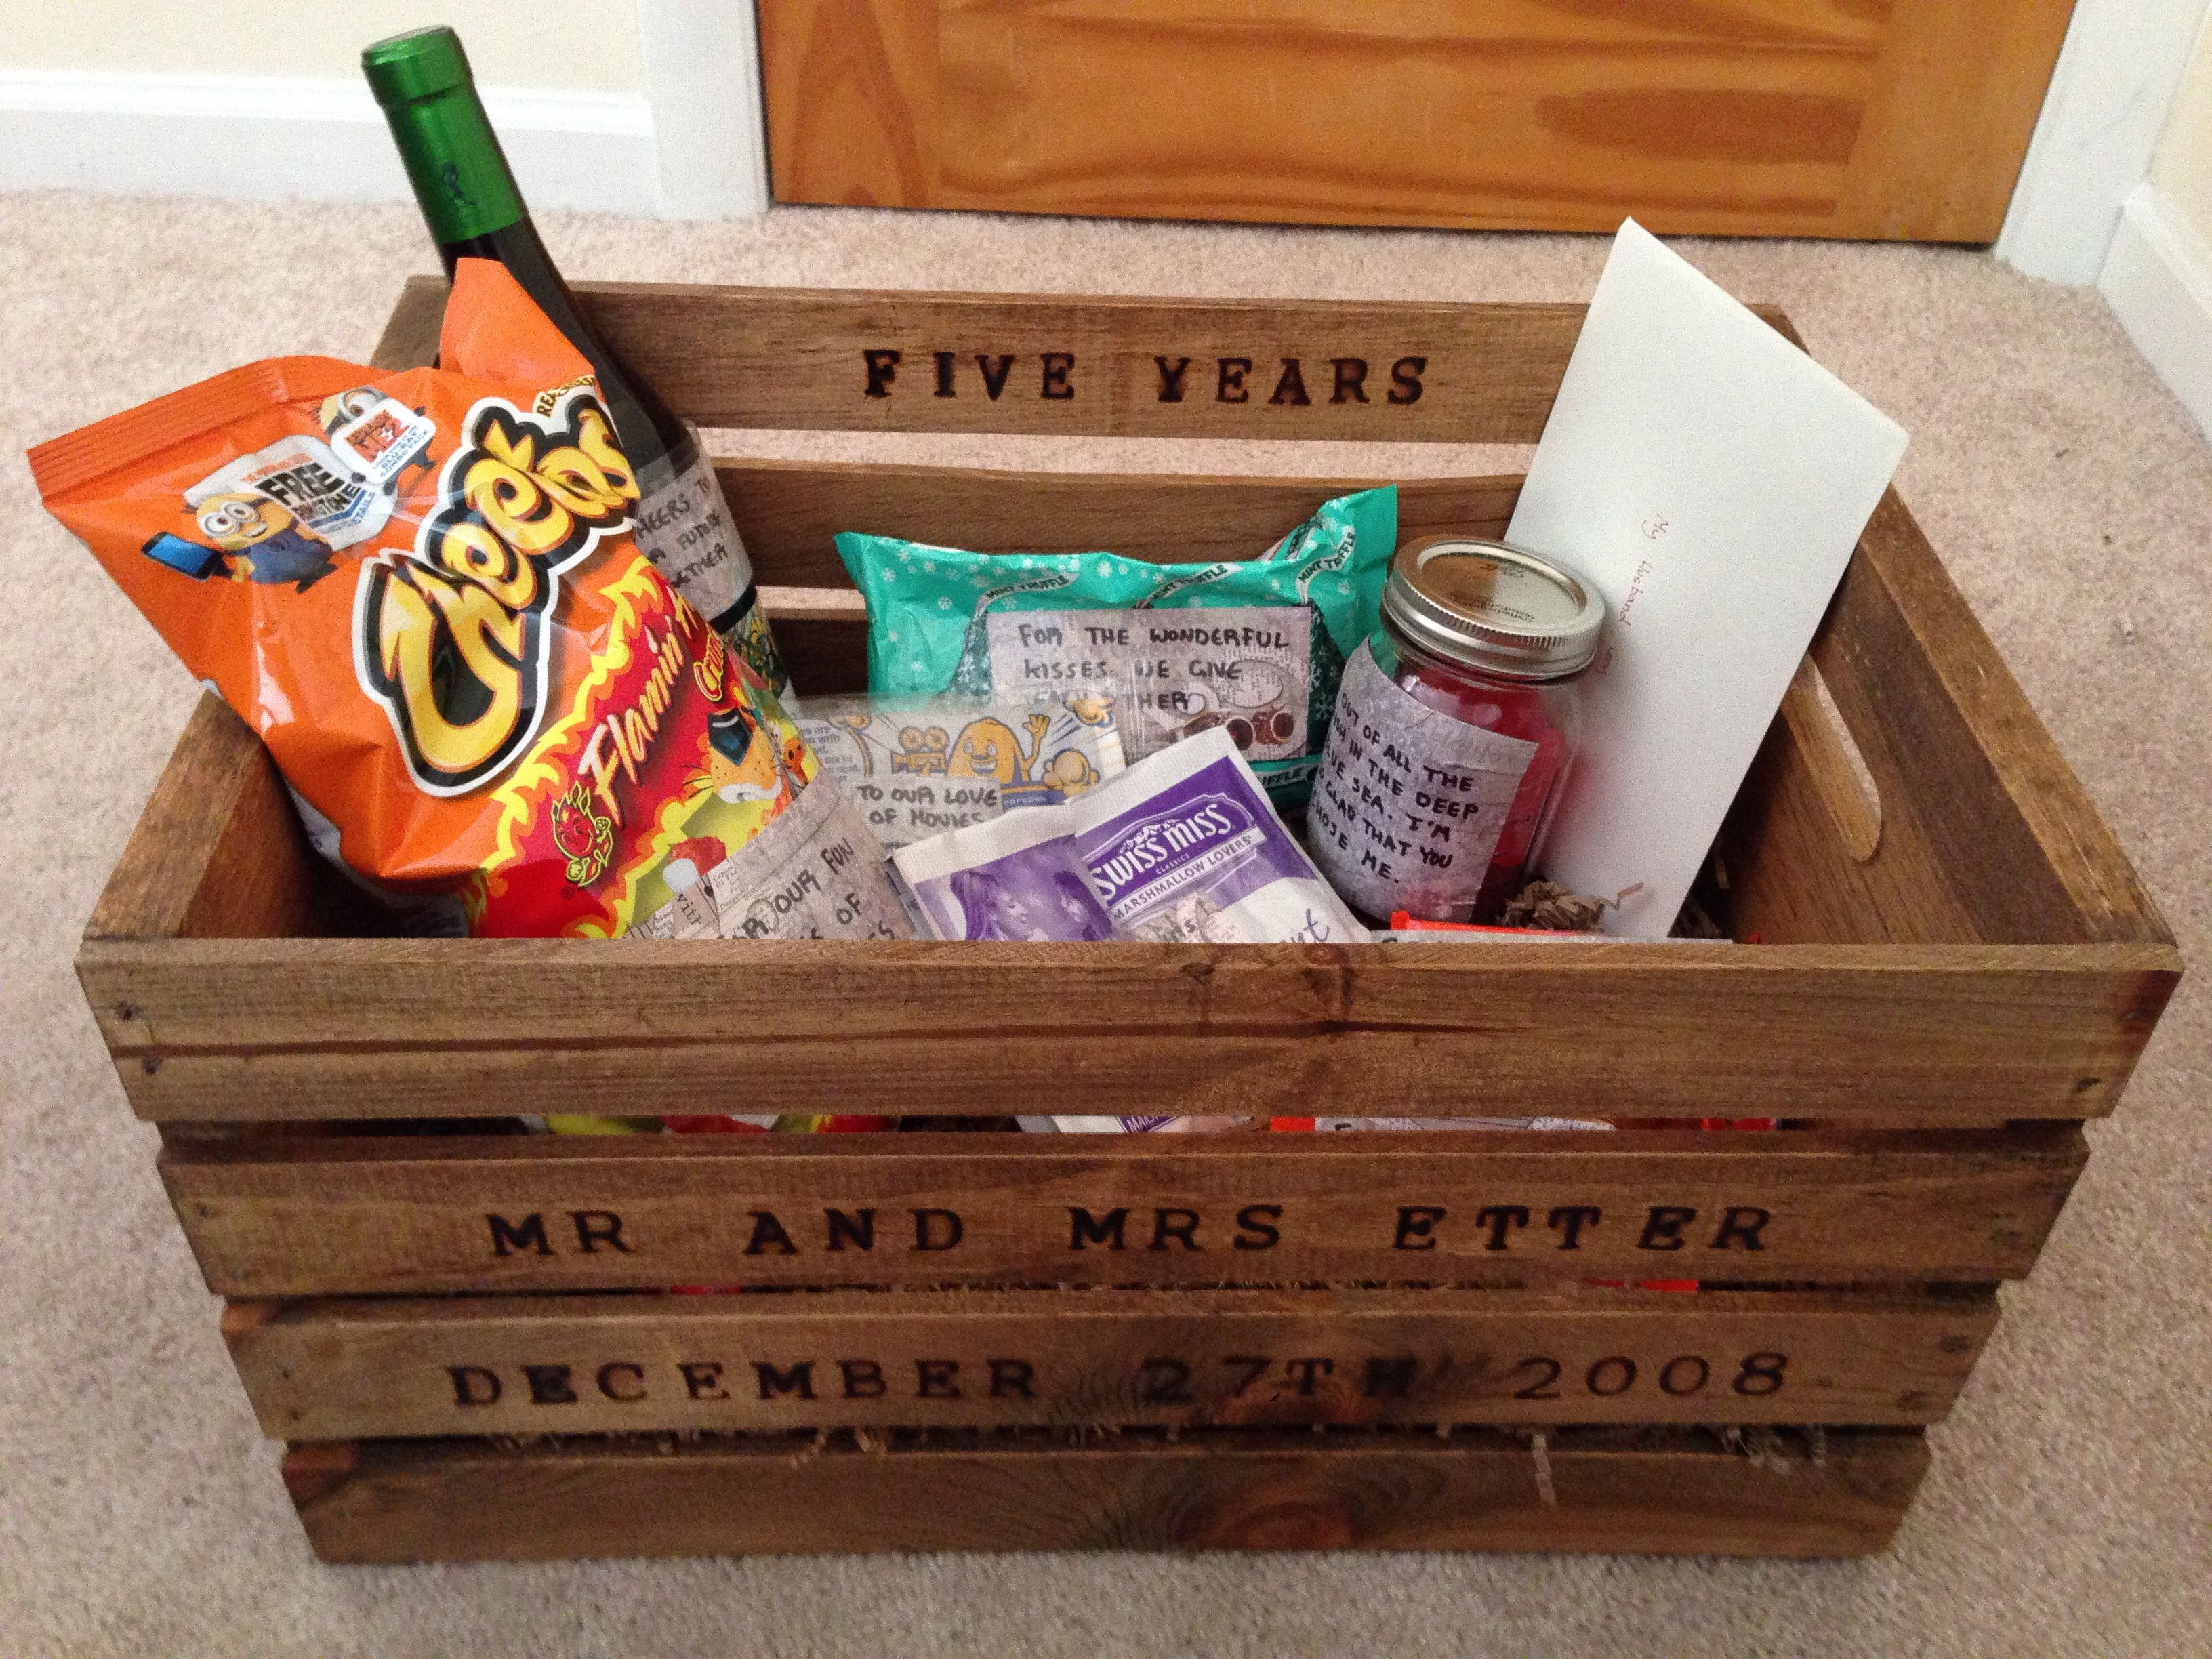 4 Year Anniversary Gift Ideas For Him  Gift For 5 Year Anniversary creative Pinterest